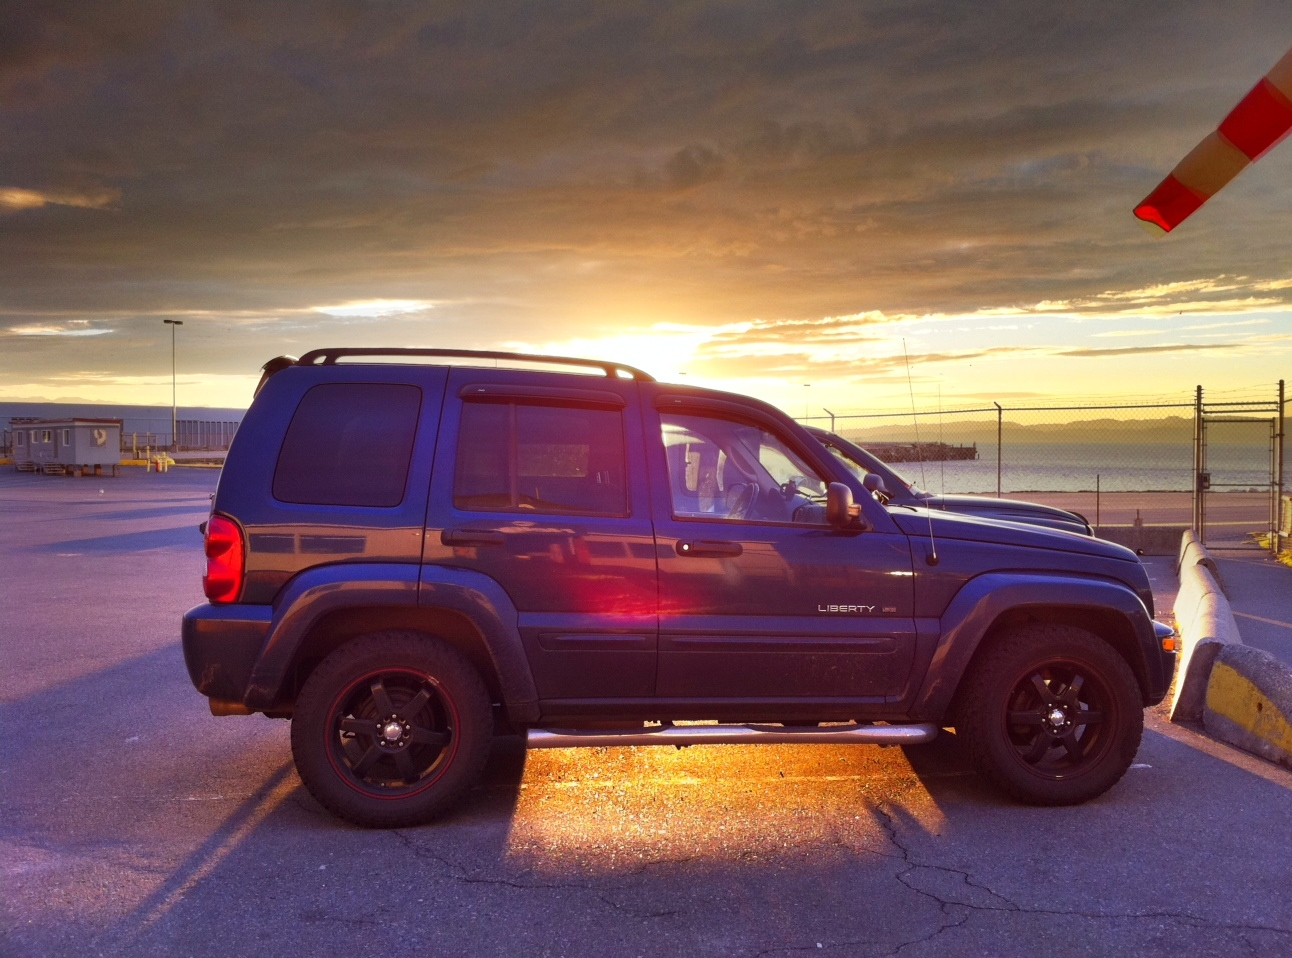 Amster_G 2002 Jeep Liberty 13344172